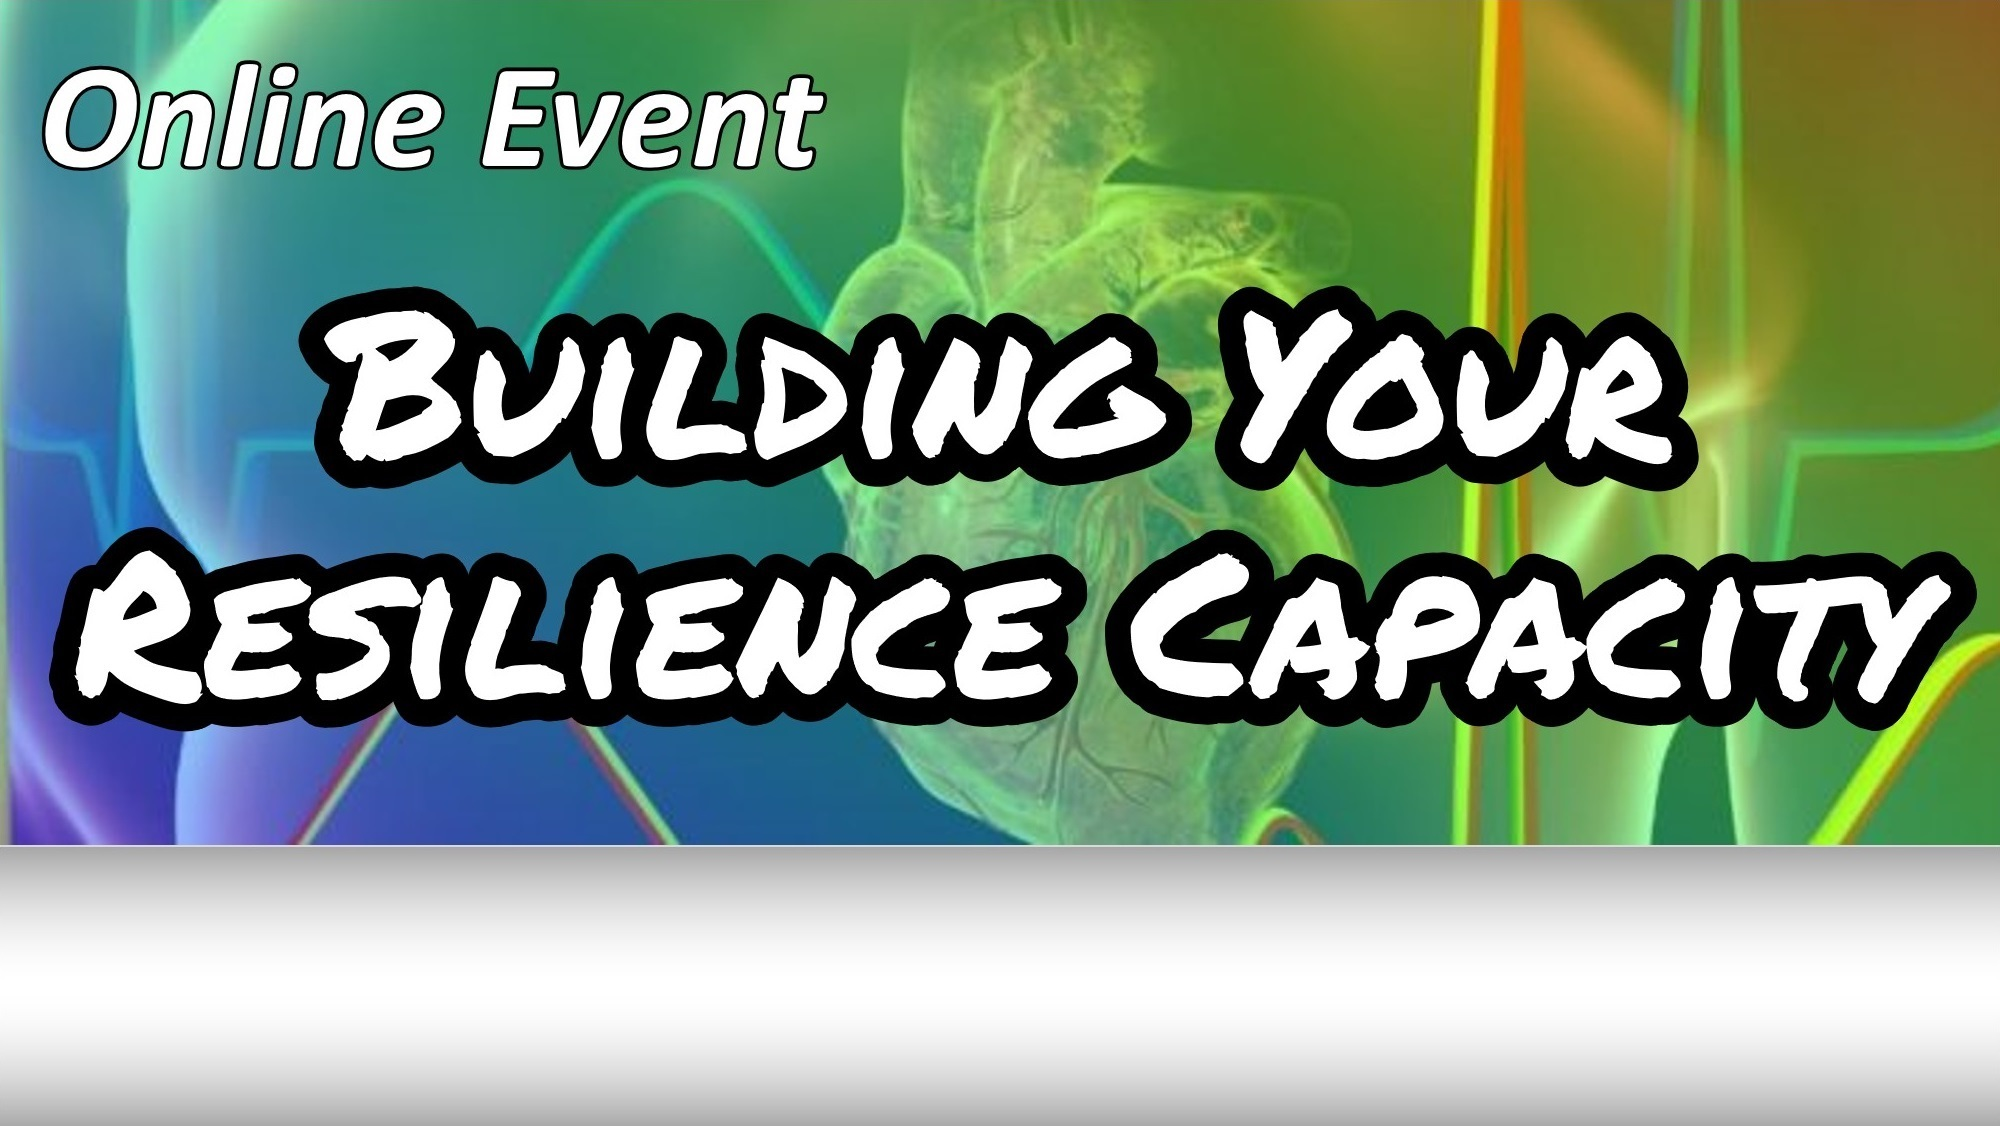 Online Event Building Your Resilience Capacity